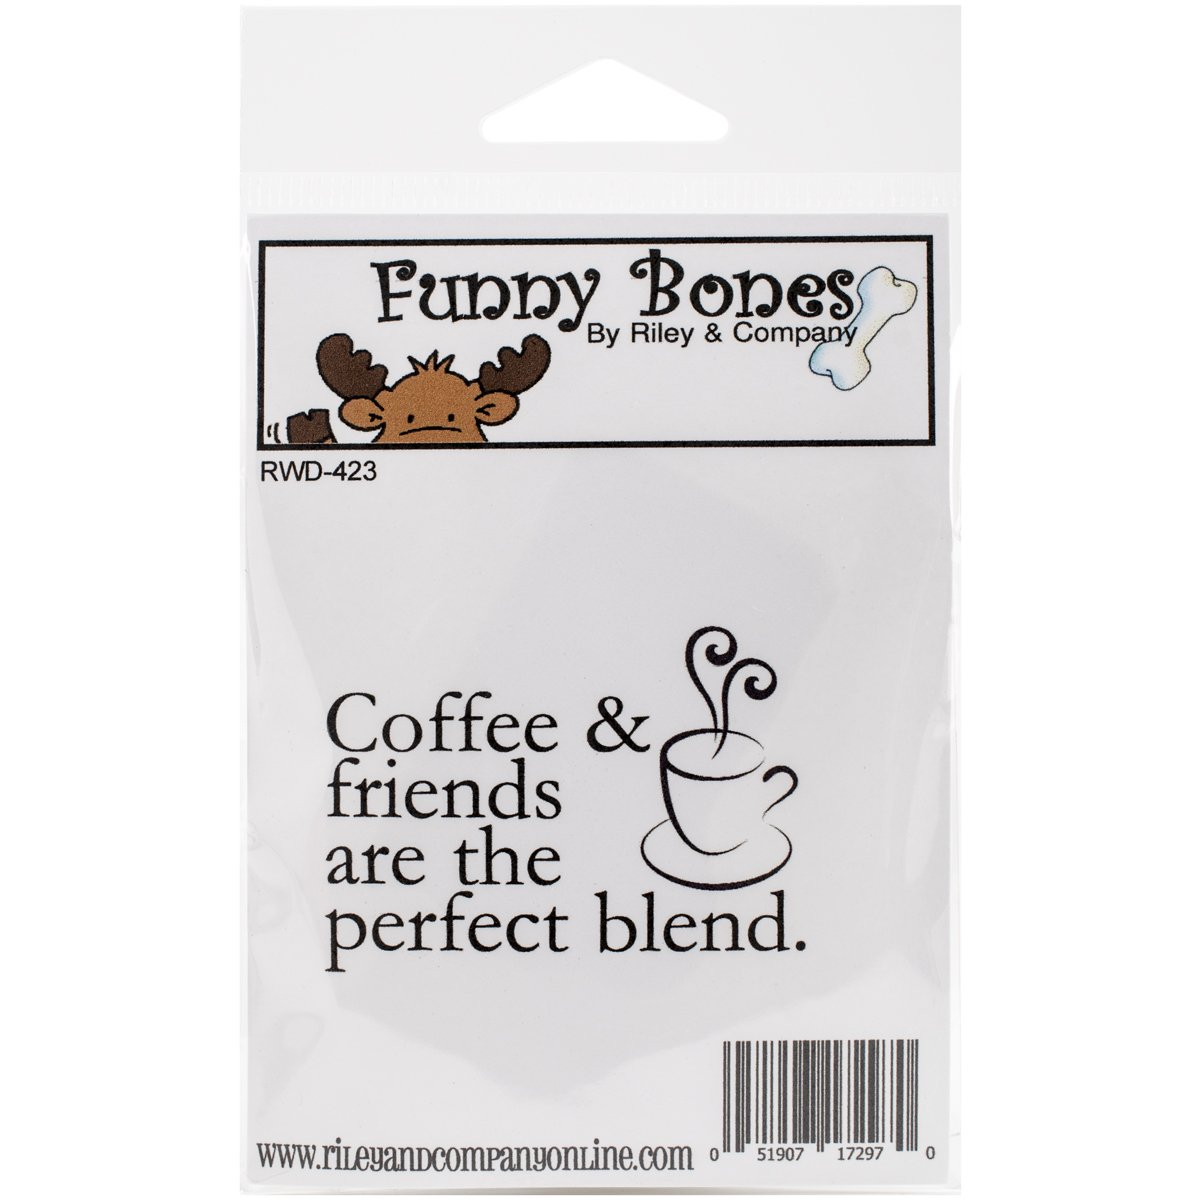 Coffee /& Friends 2.25 by 1.75 Riley /& Company Funny Bones Cling Mounted Stamp